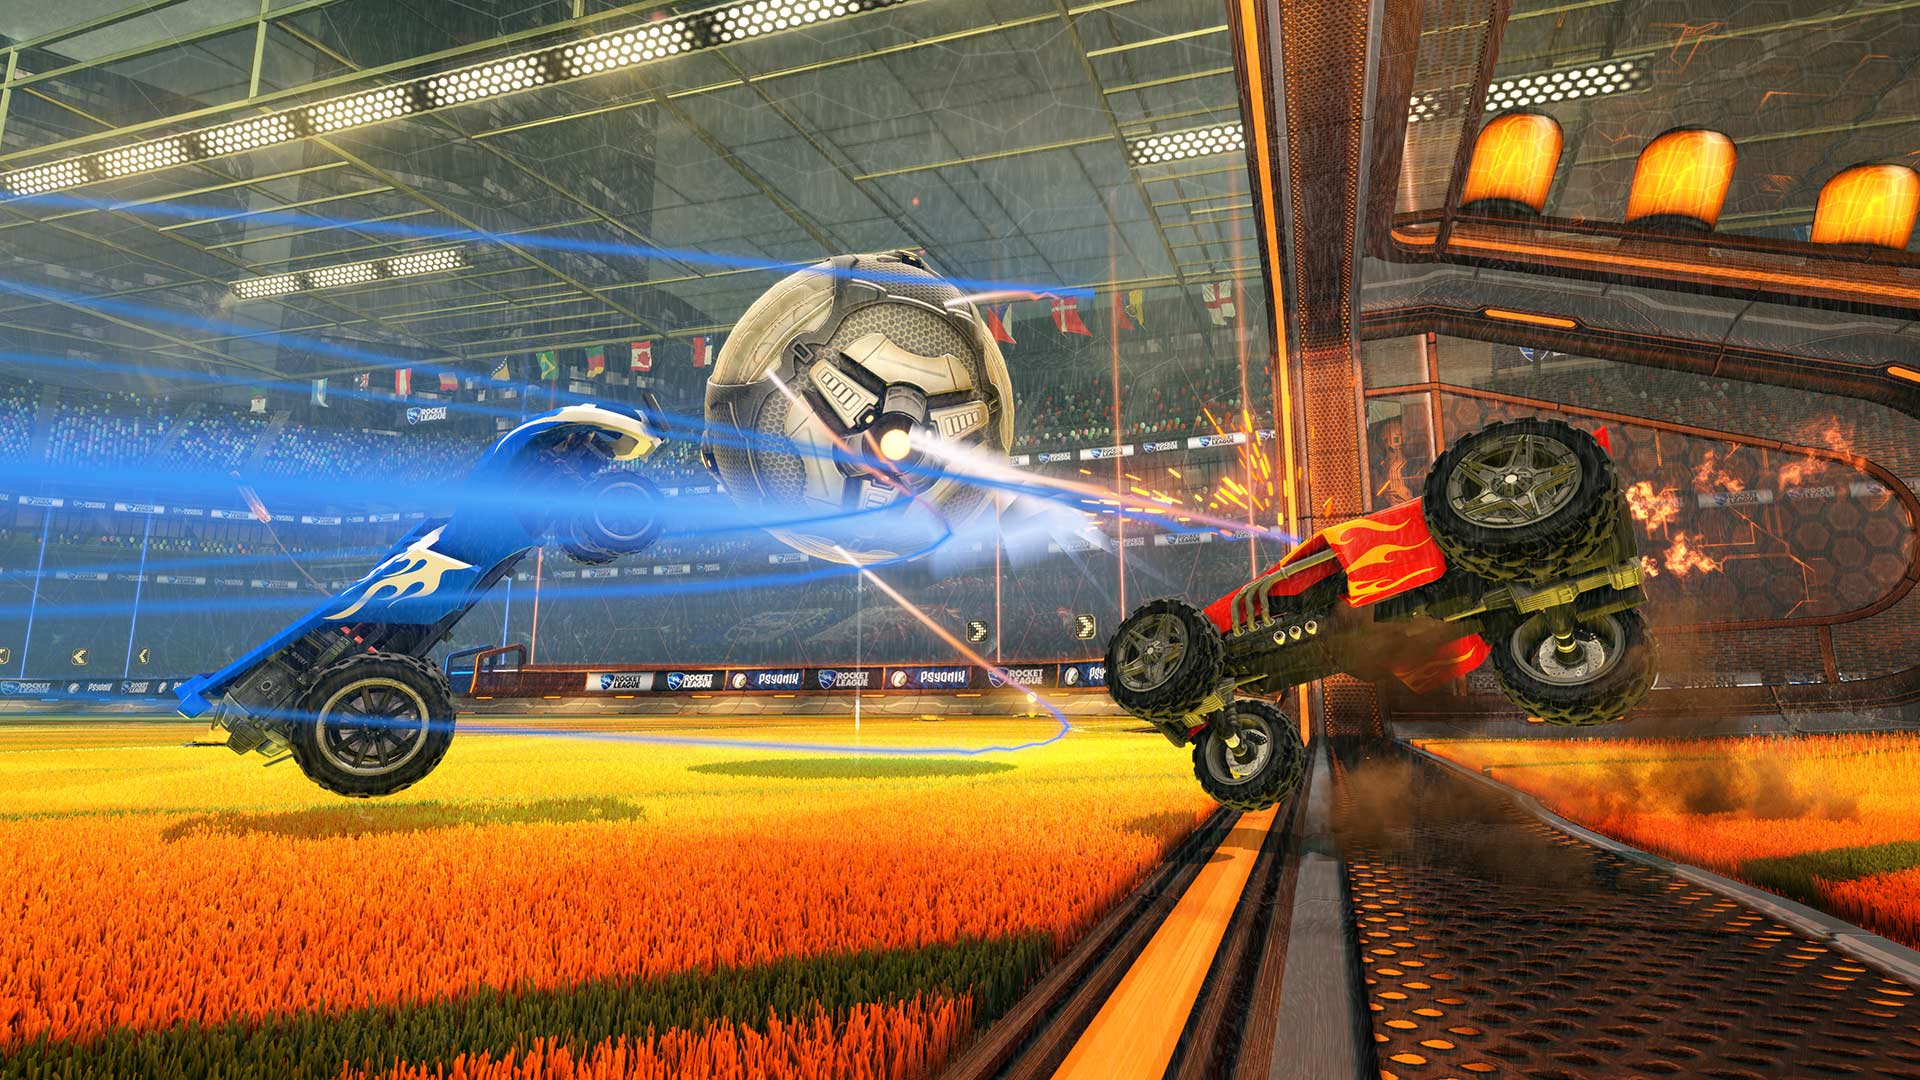 IMG:http://vignette2.wikia.nocookie.net/steamtradingcards/images/8/8e/Rocket_League_Artwork_4.jpg/revision/latest?cb=20151016053833